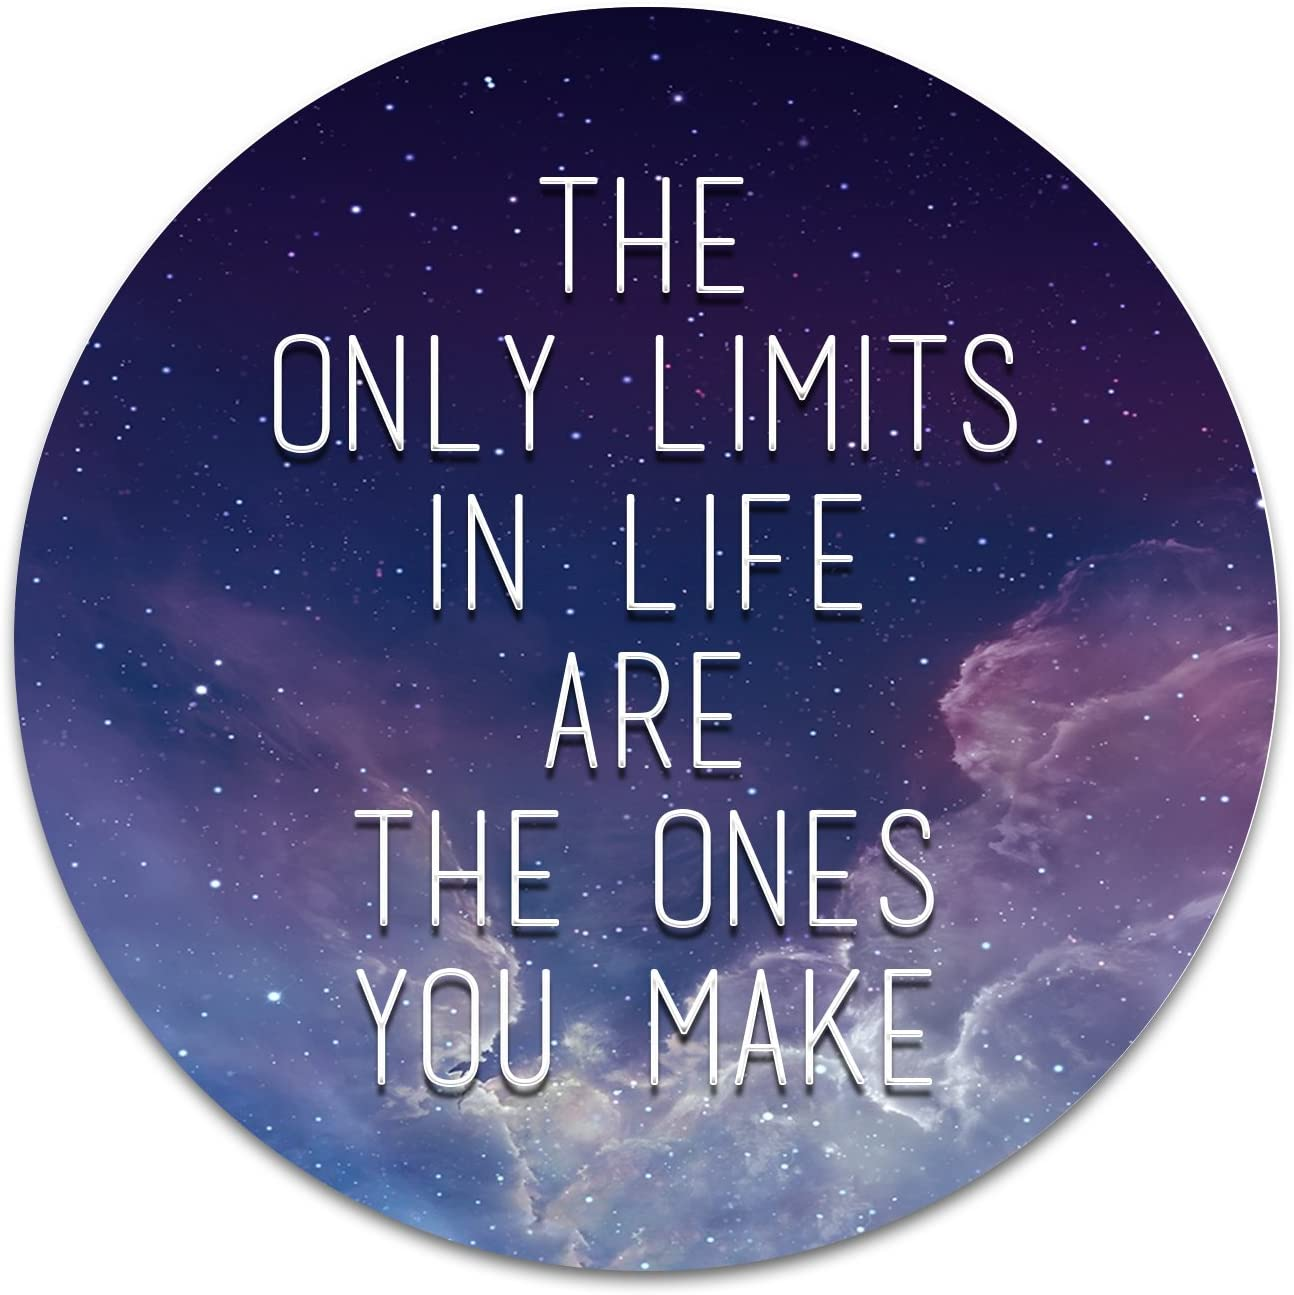 2X Sticker Set - The Only Limits in Life - for Phone Grip Stent Cell Phones Tablets (Stickers Only)